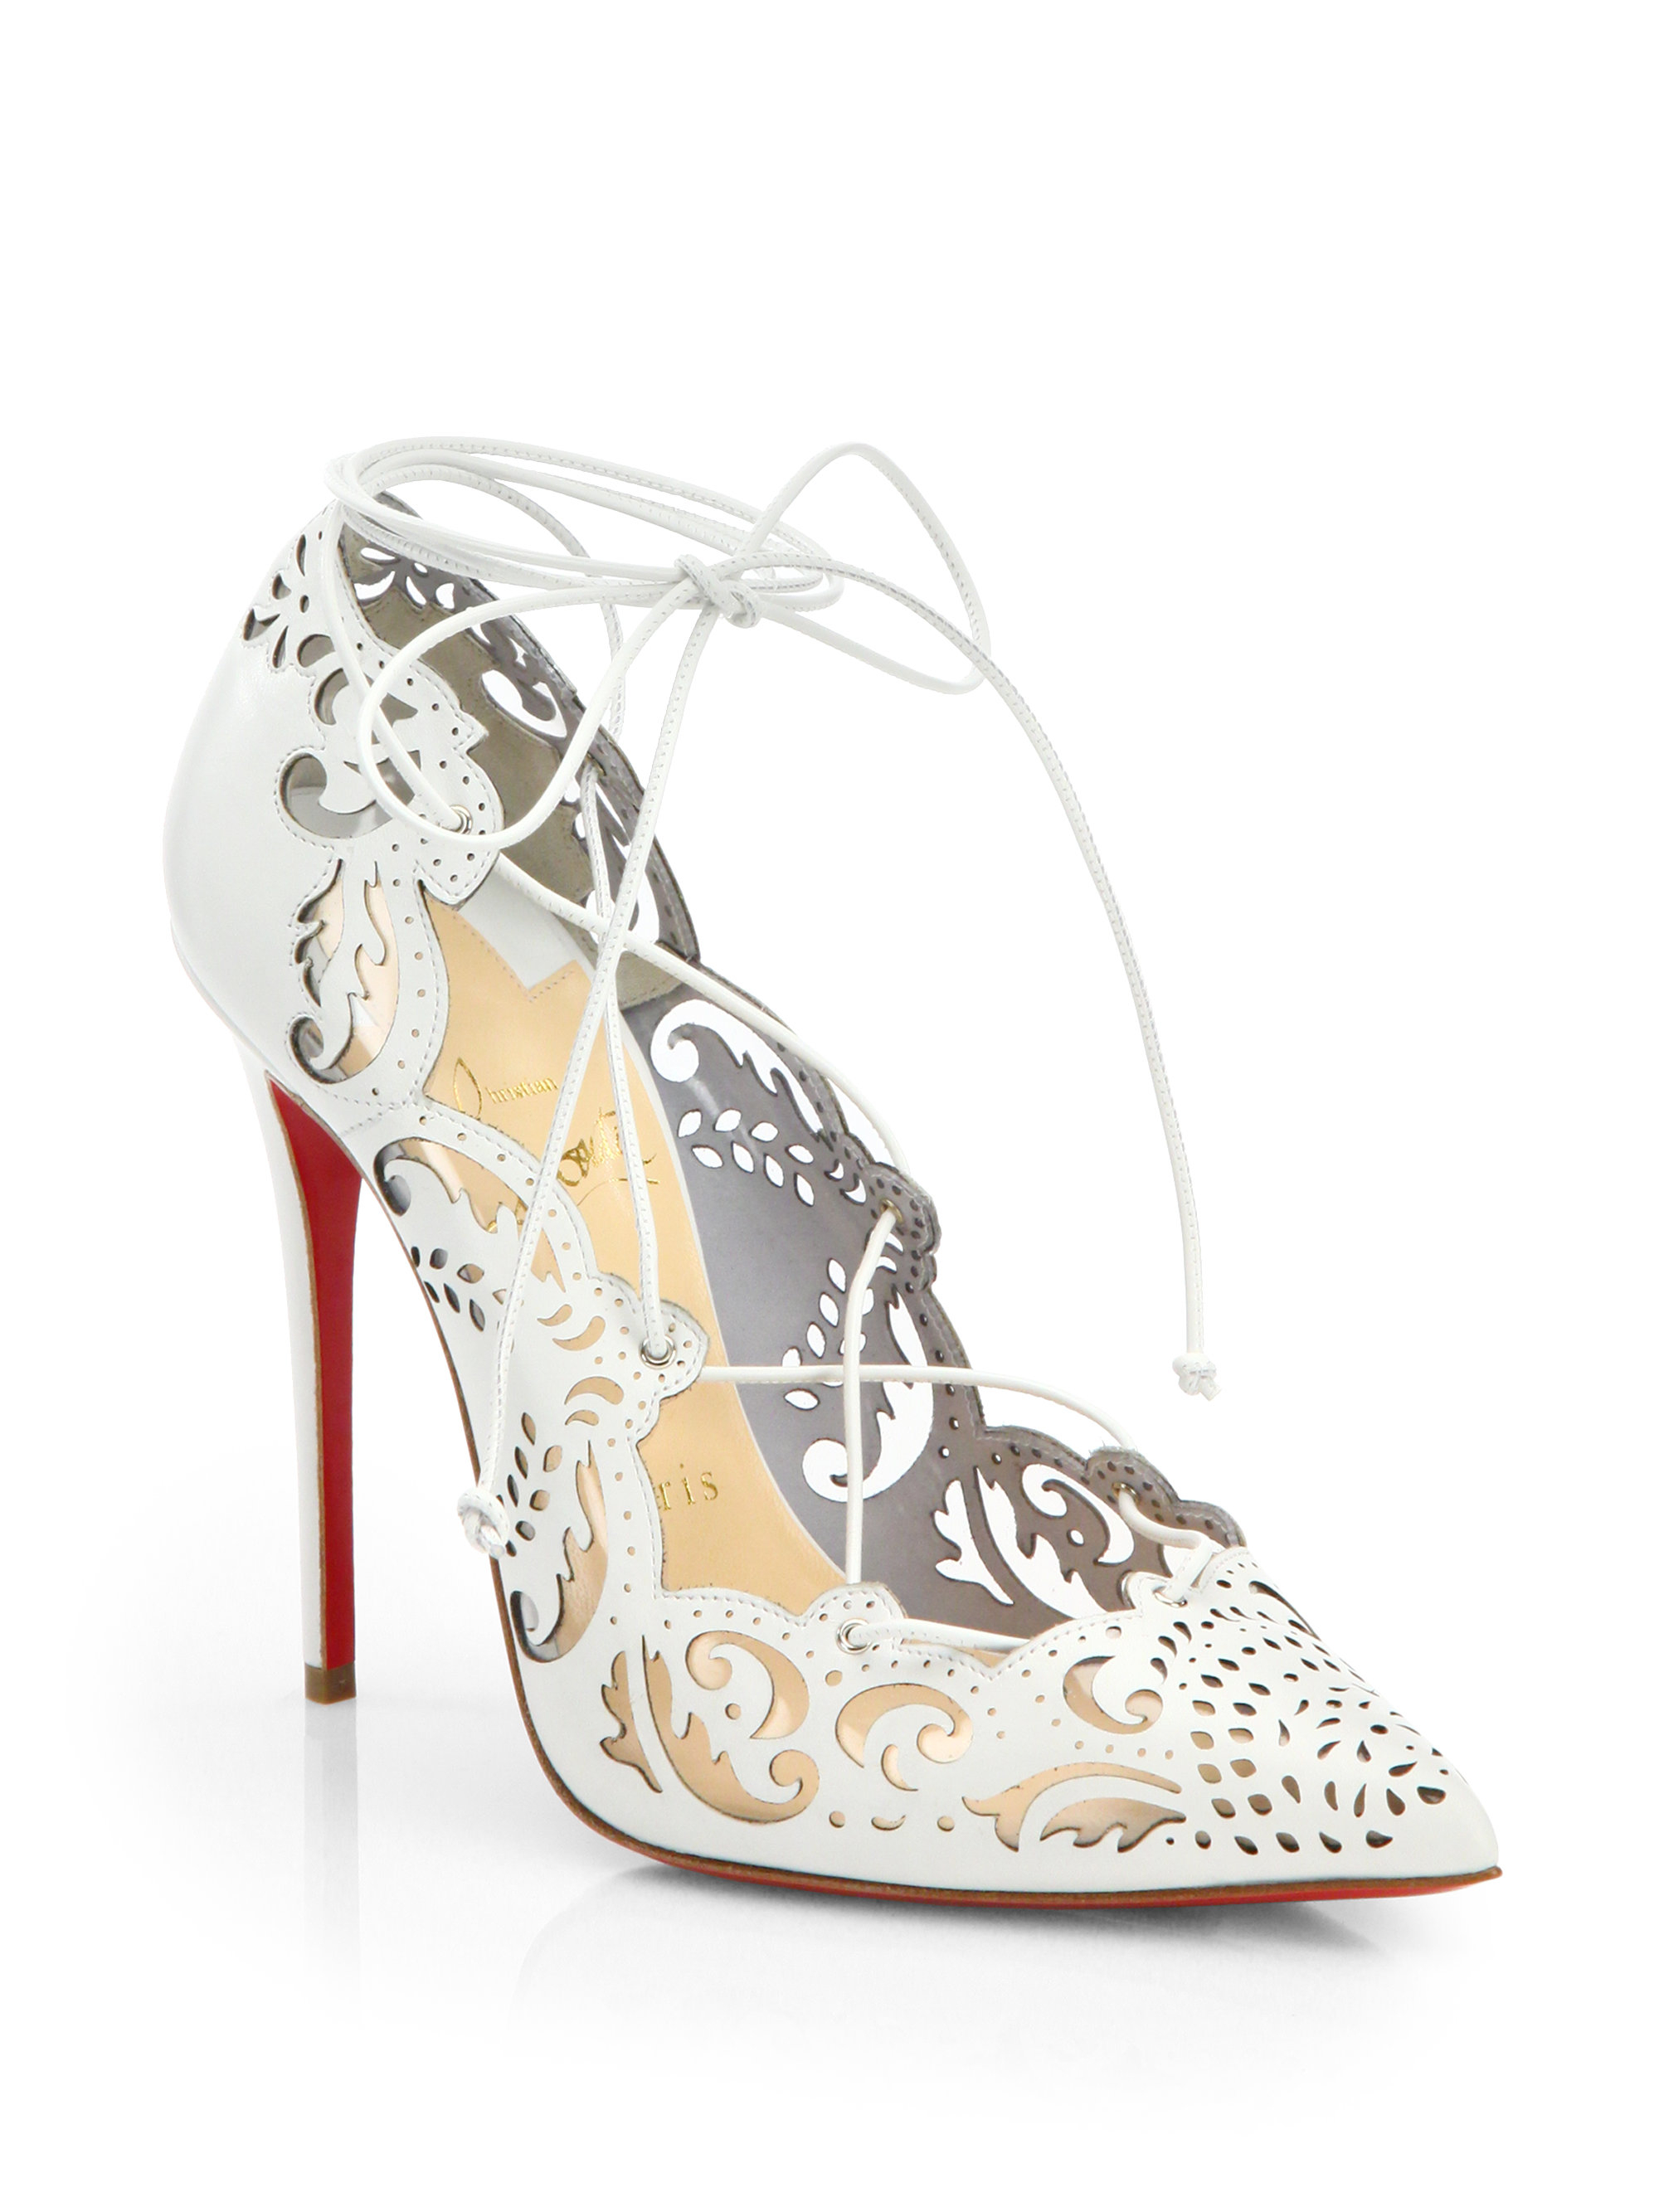 Lyst - Christian Louboutin Impera Lasercut Leather Pumps in White 13465f7ab